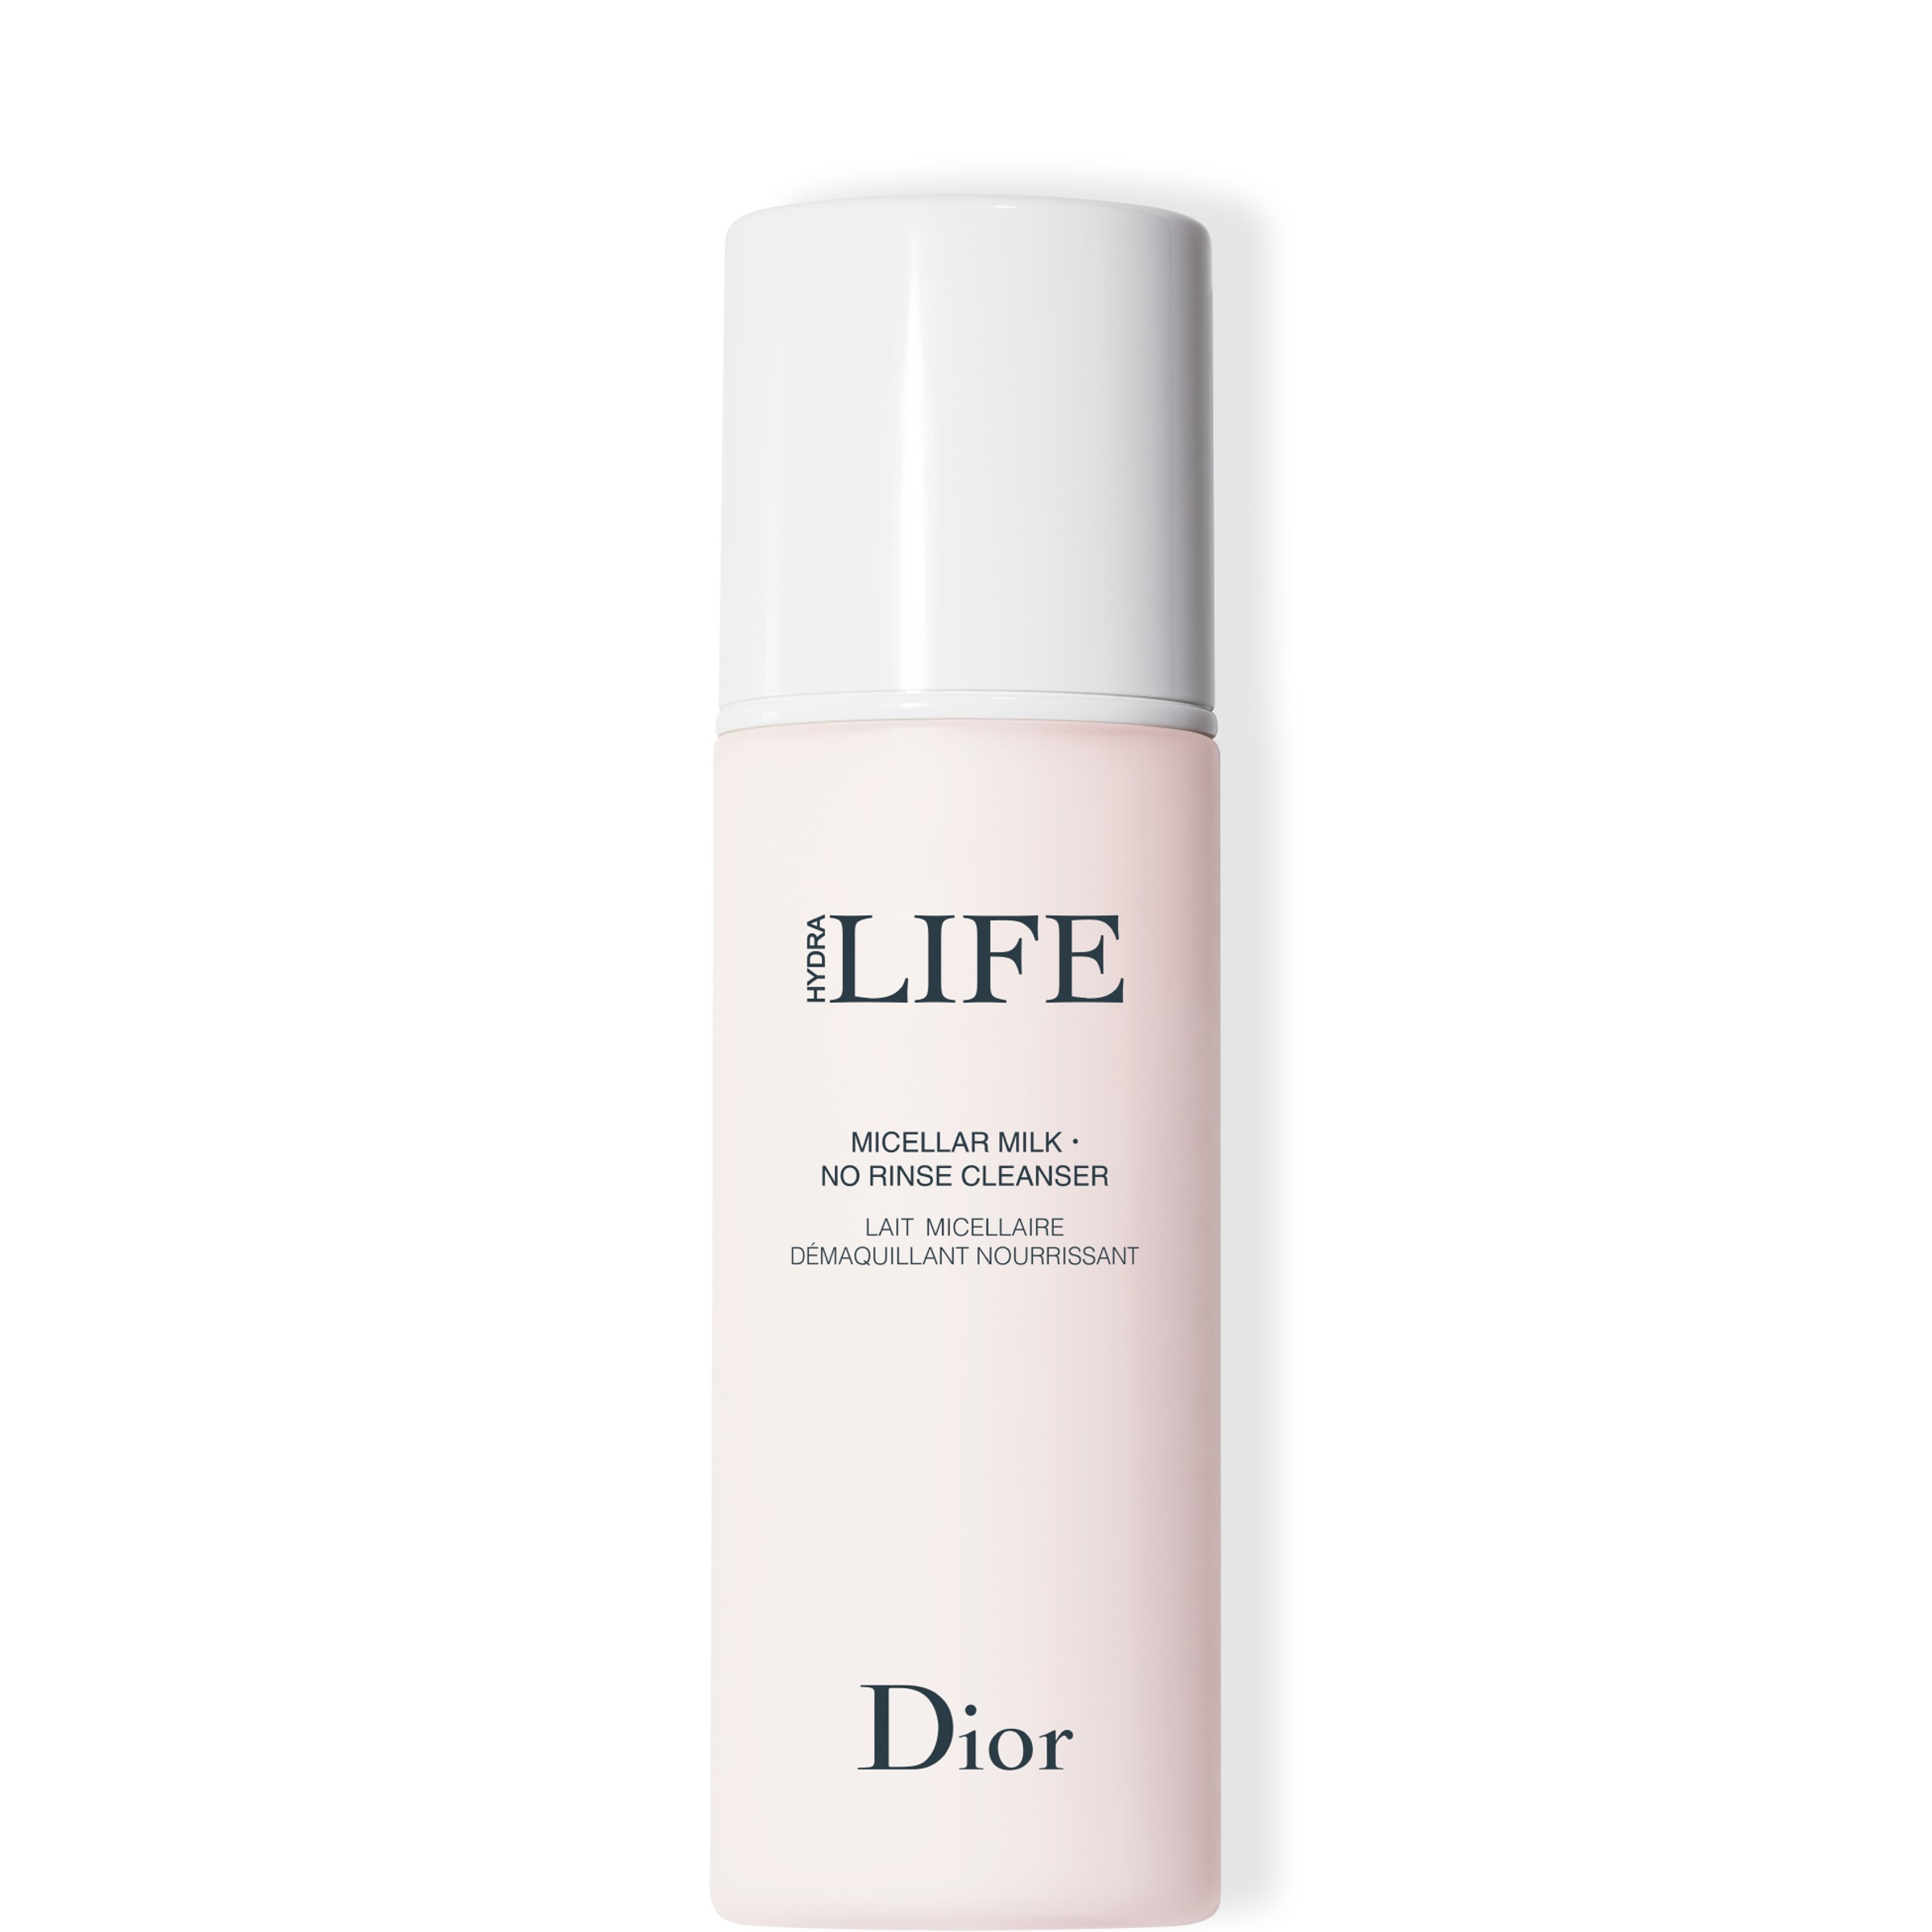 Dior Hydra Life Micellar Milk-No Rinse Cleanser 200ml